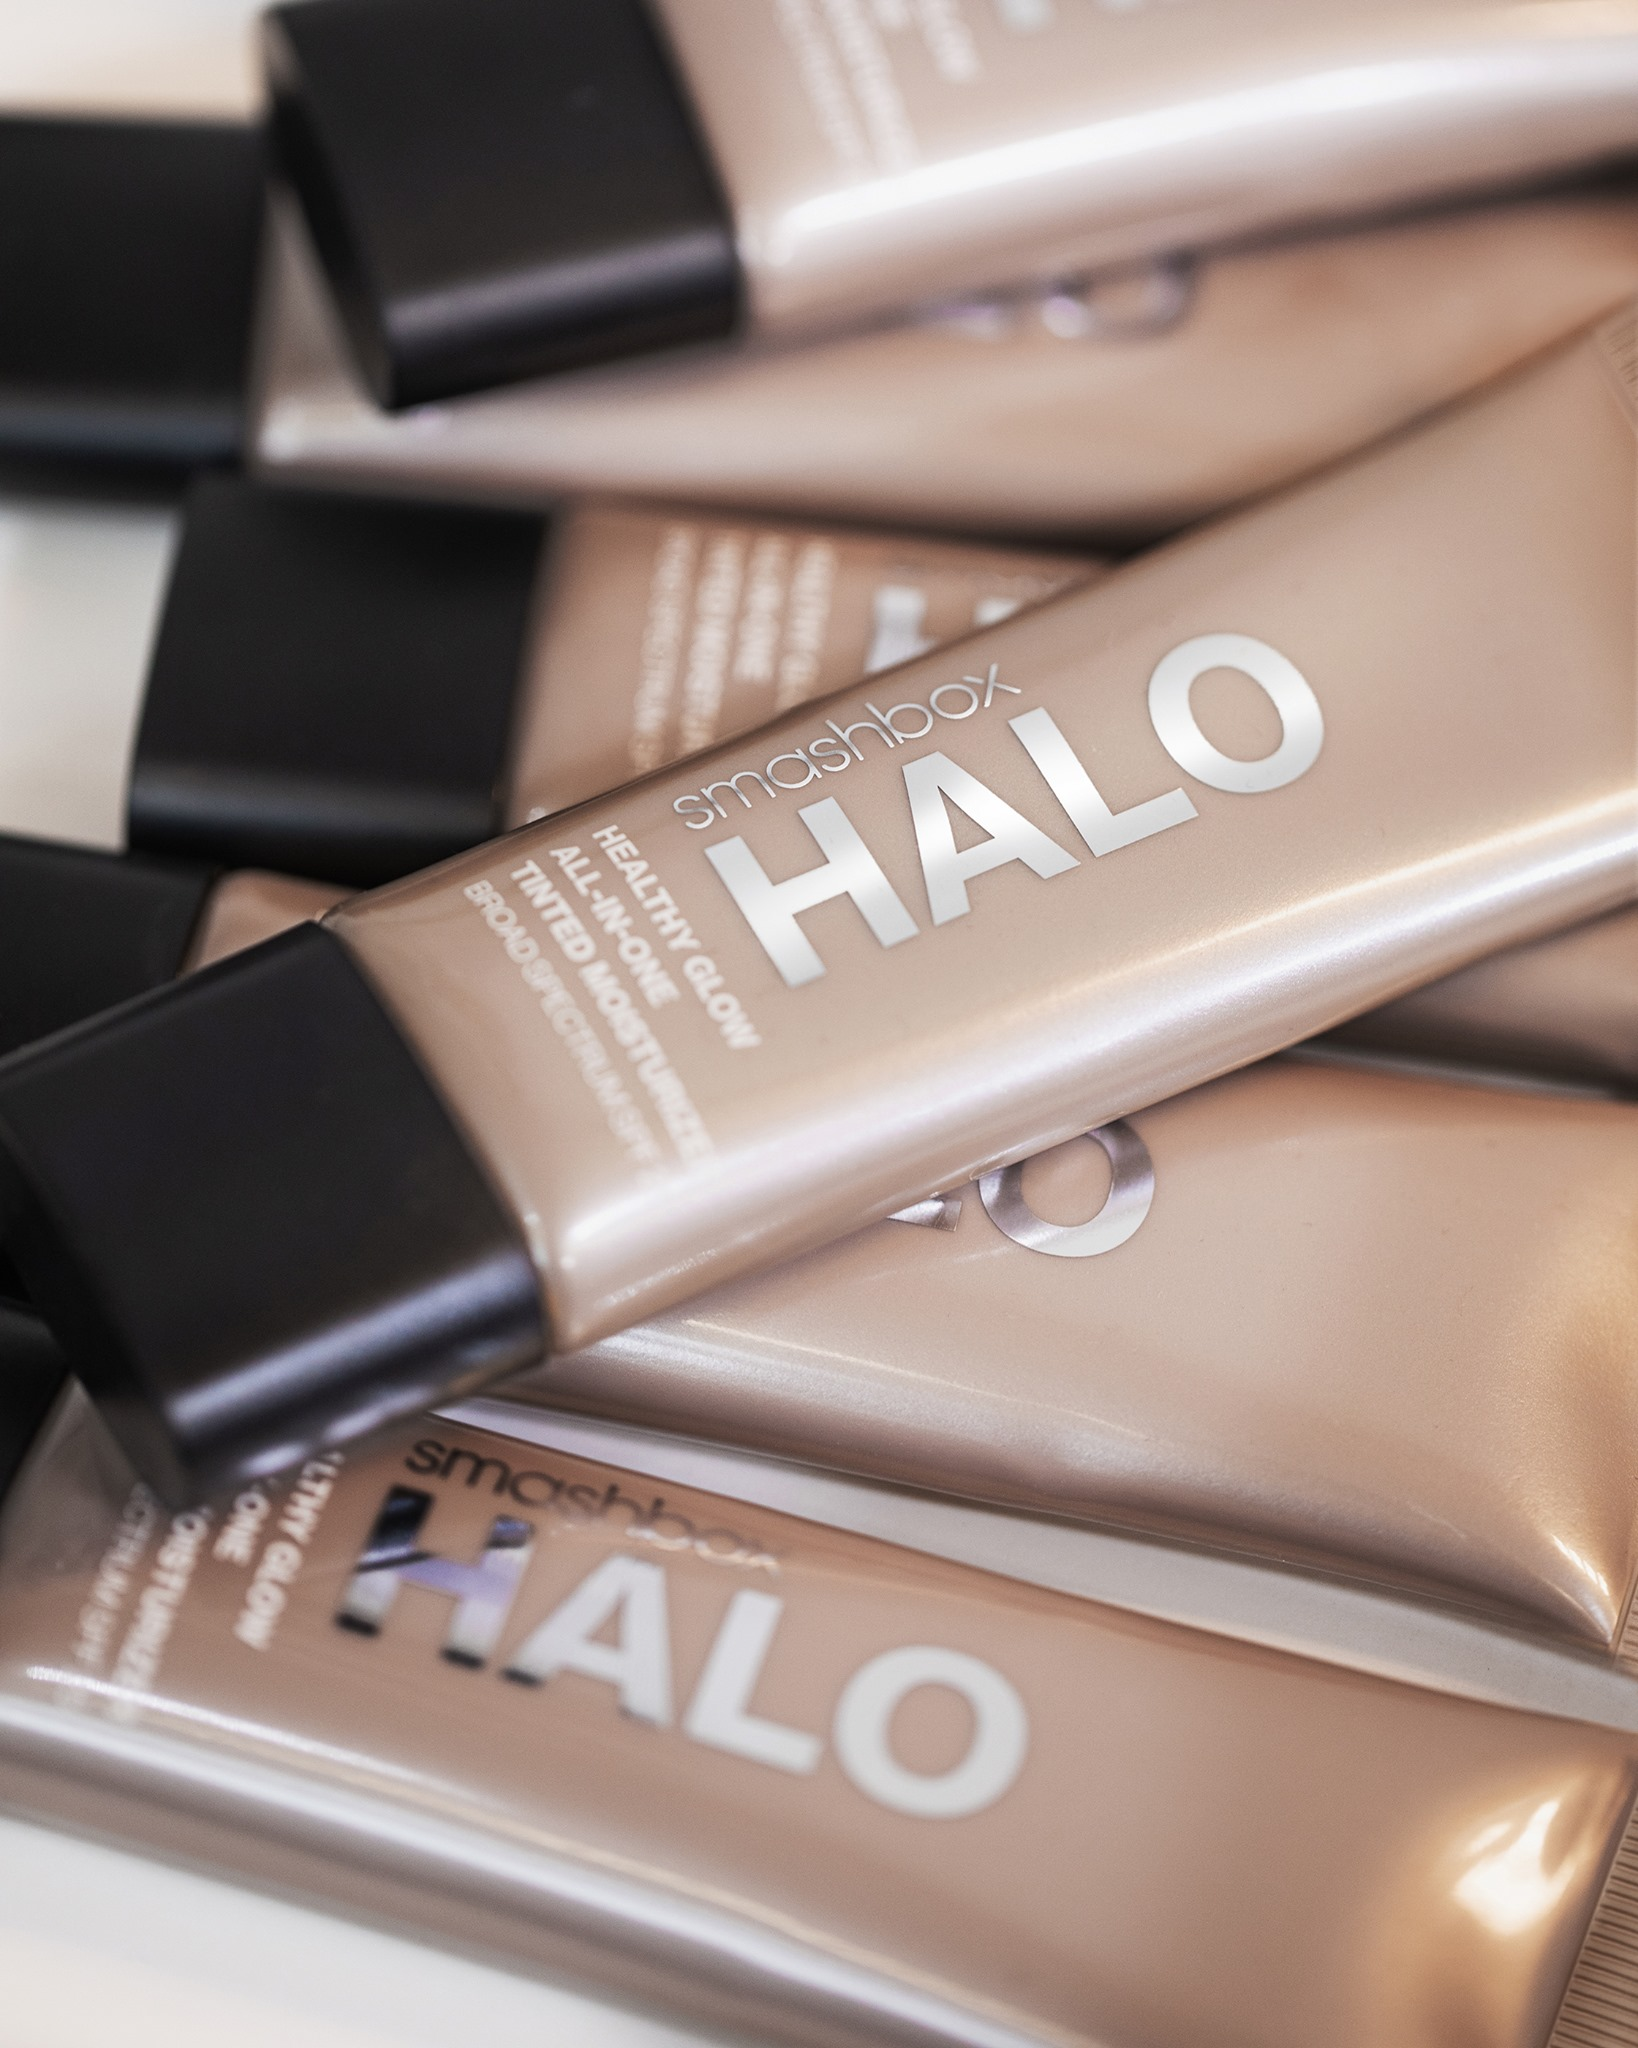 Smashbox Halo Healthy Glow All-in-One